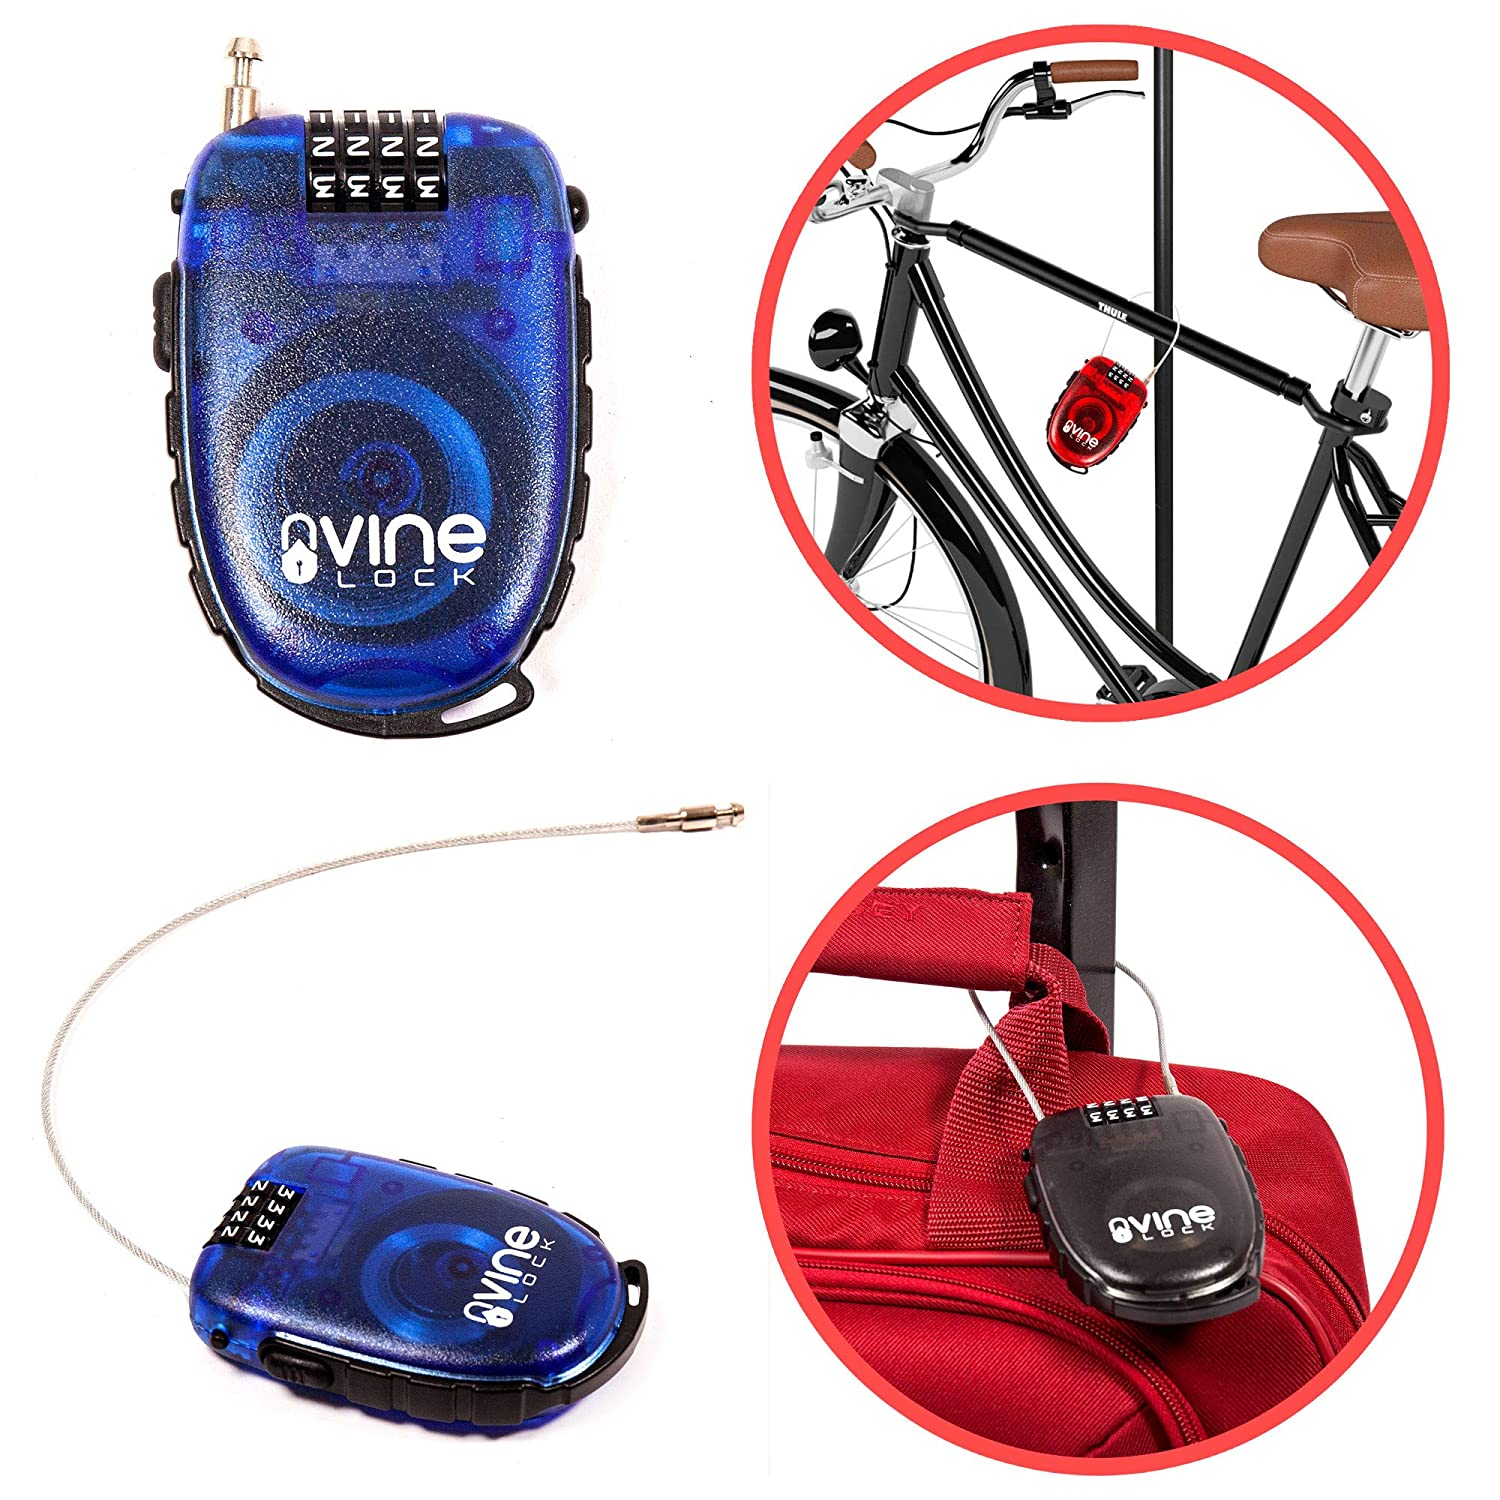 Vine Lock Ultra Secure Retractable 4 Digit Combination Secure Cable Lock for Travel//Bike//Suitcases Transparent RED